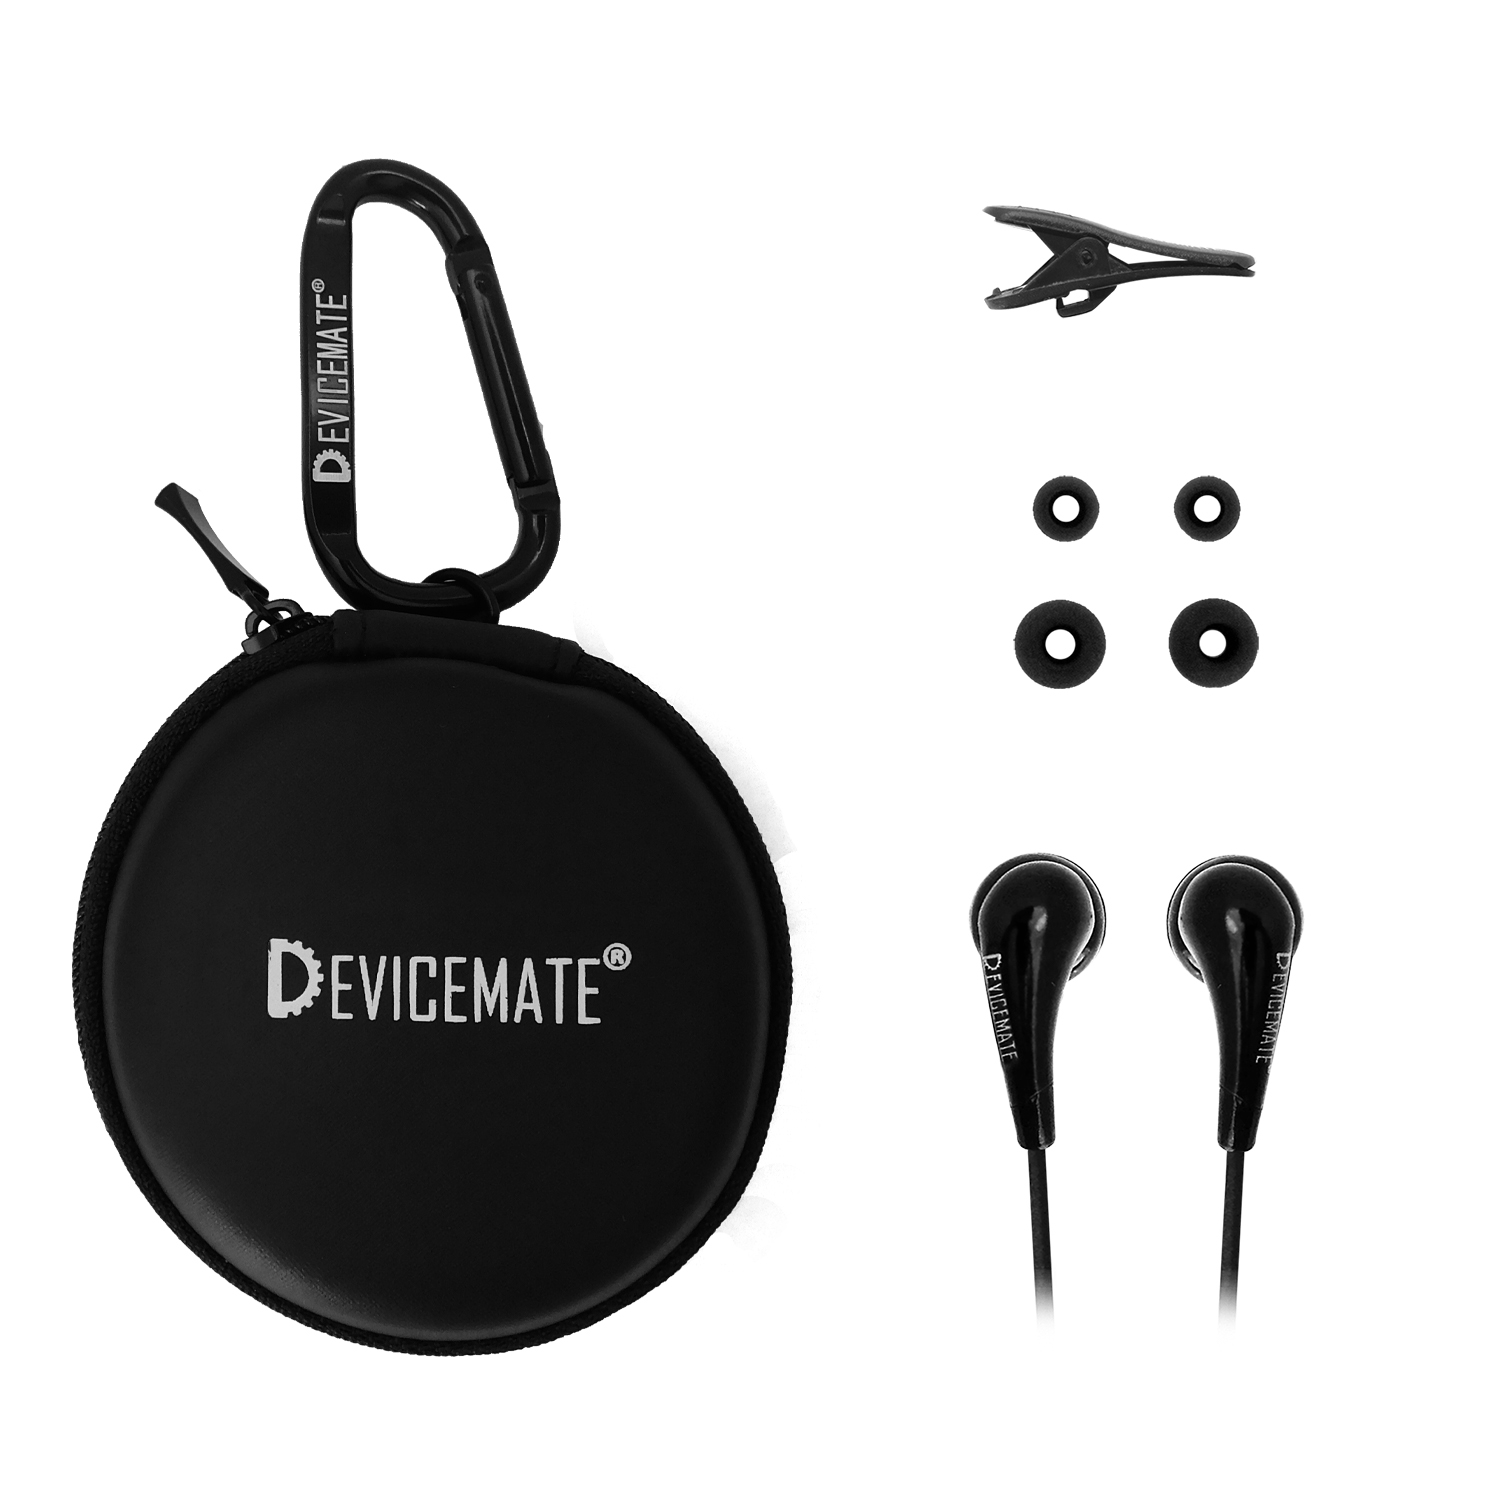 Devicemate SD 255-CBK In-Ear Stereo Earphones [Black] Case